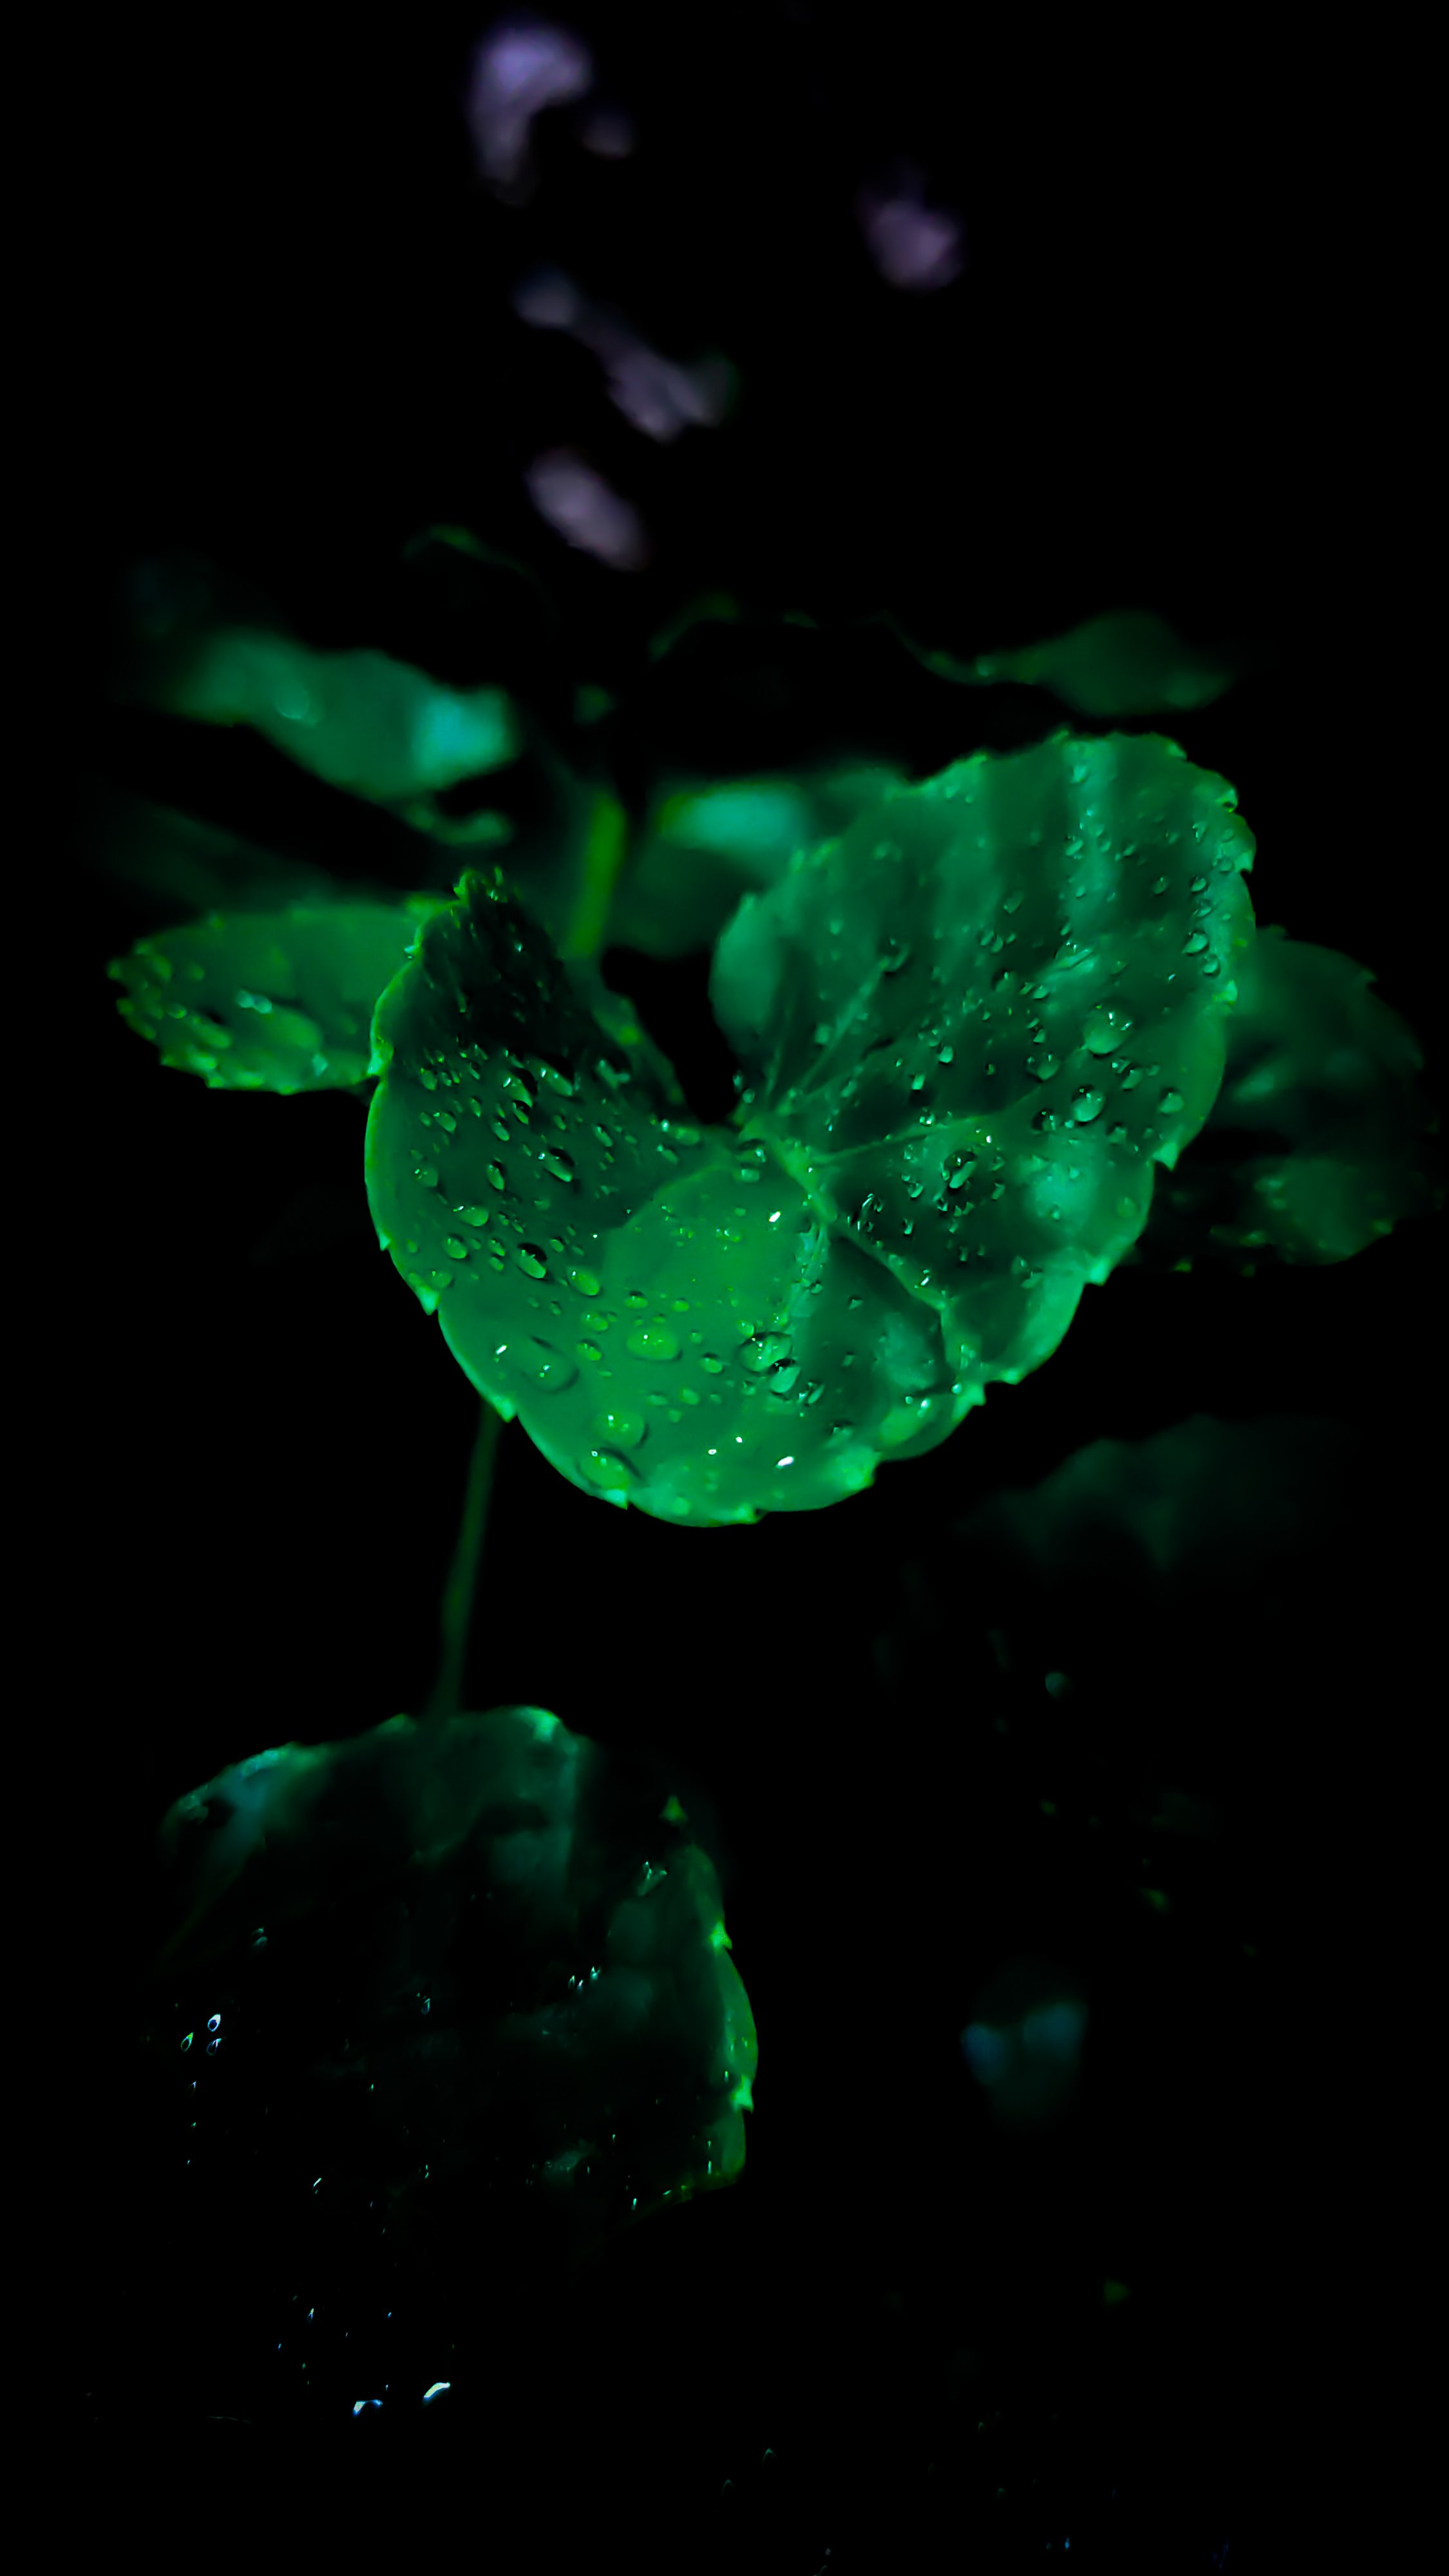 OLED wallpaper idownloadblog green water leaf plant